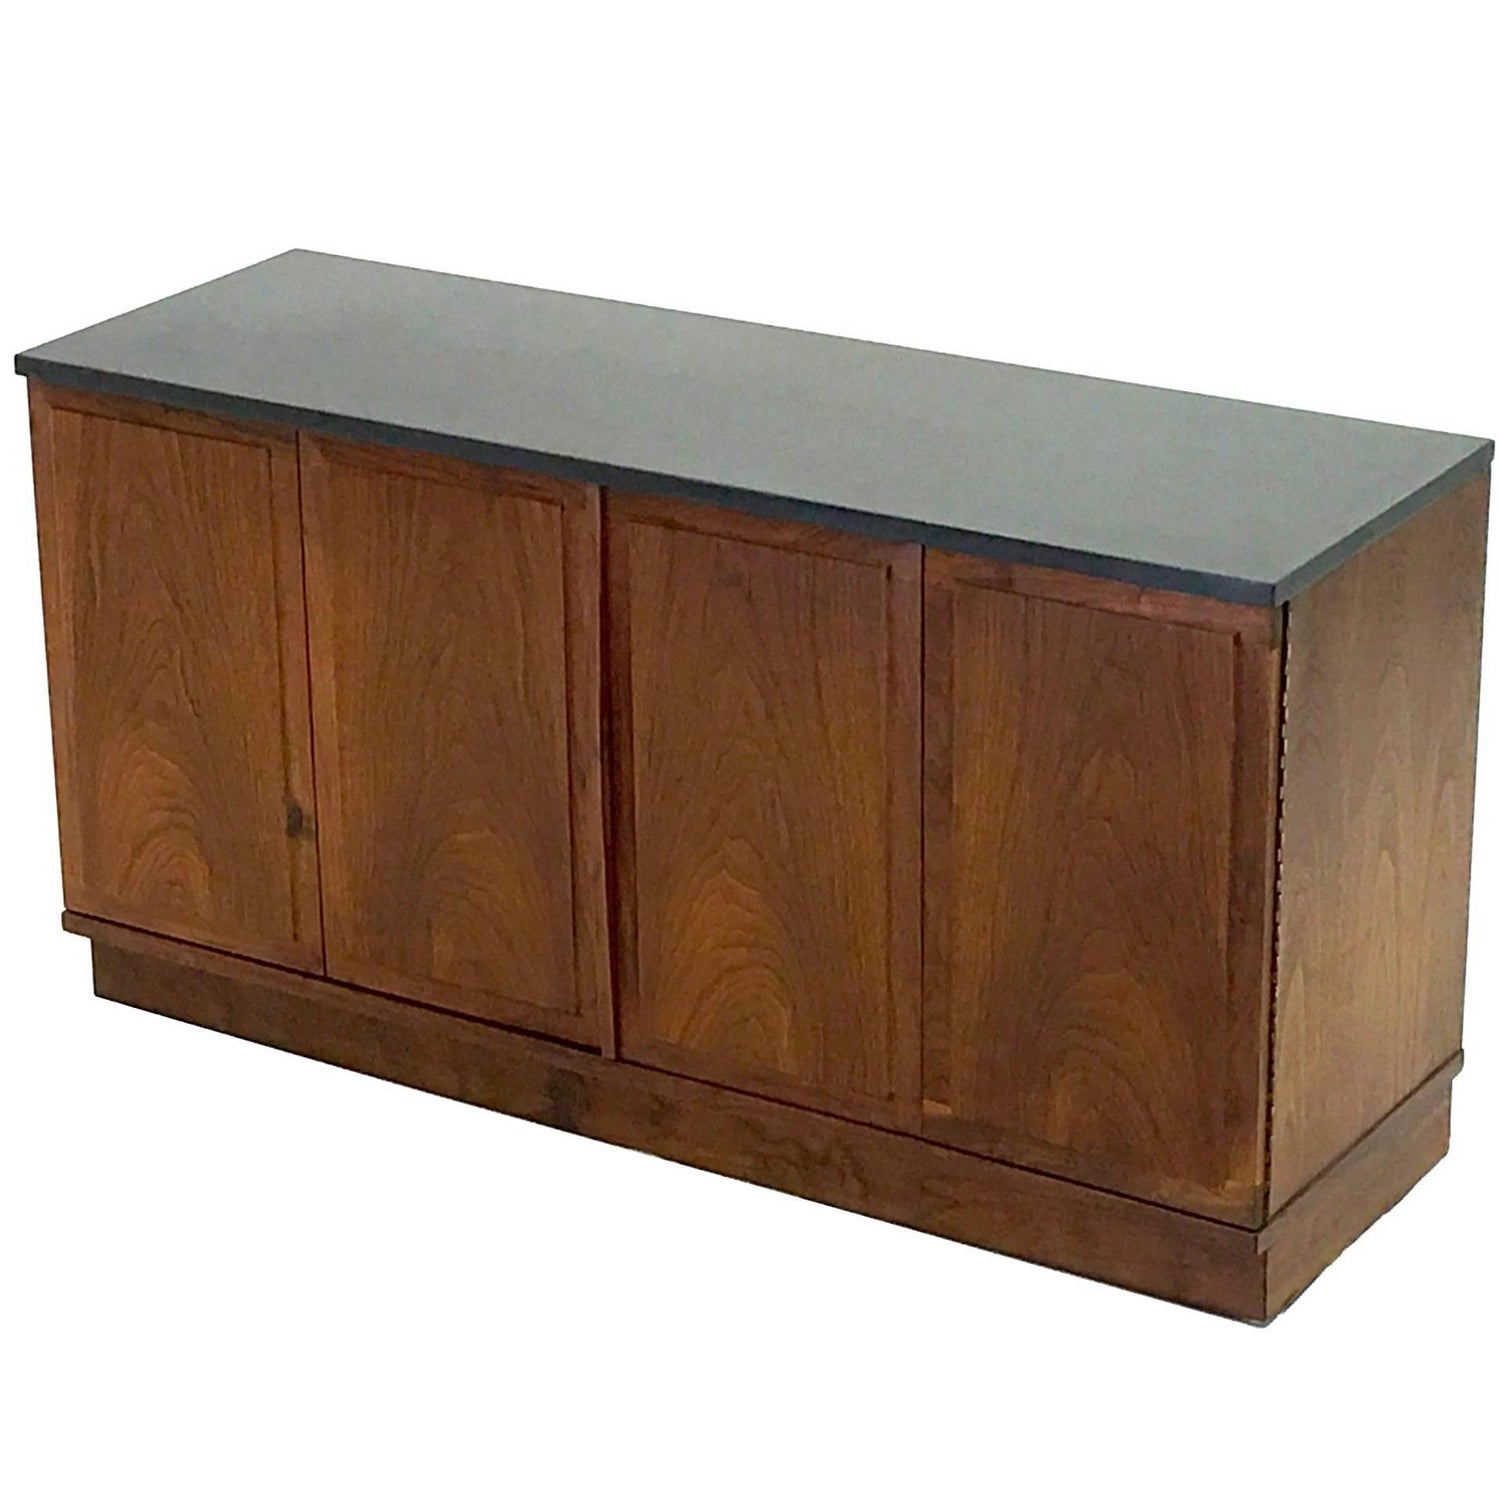 Jack Cartwright Furniture Chairs Sofas Tables More For - Cartwright furniture